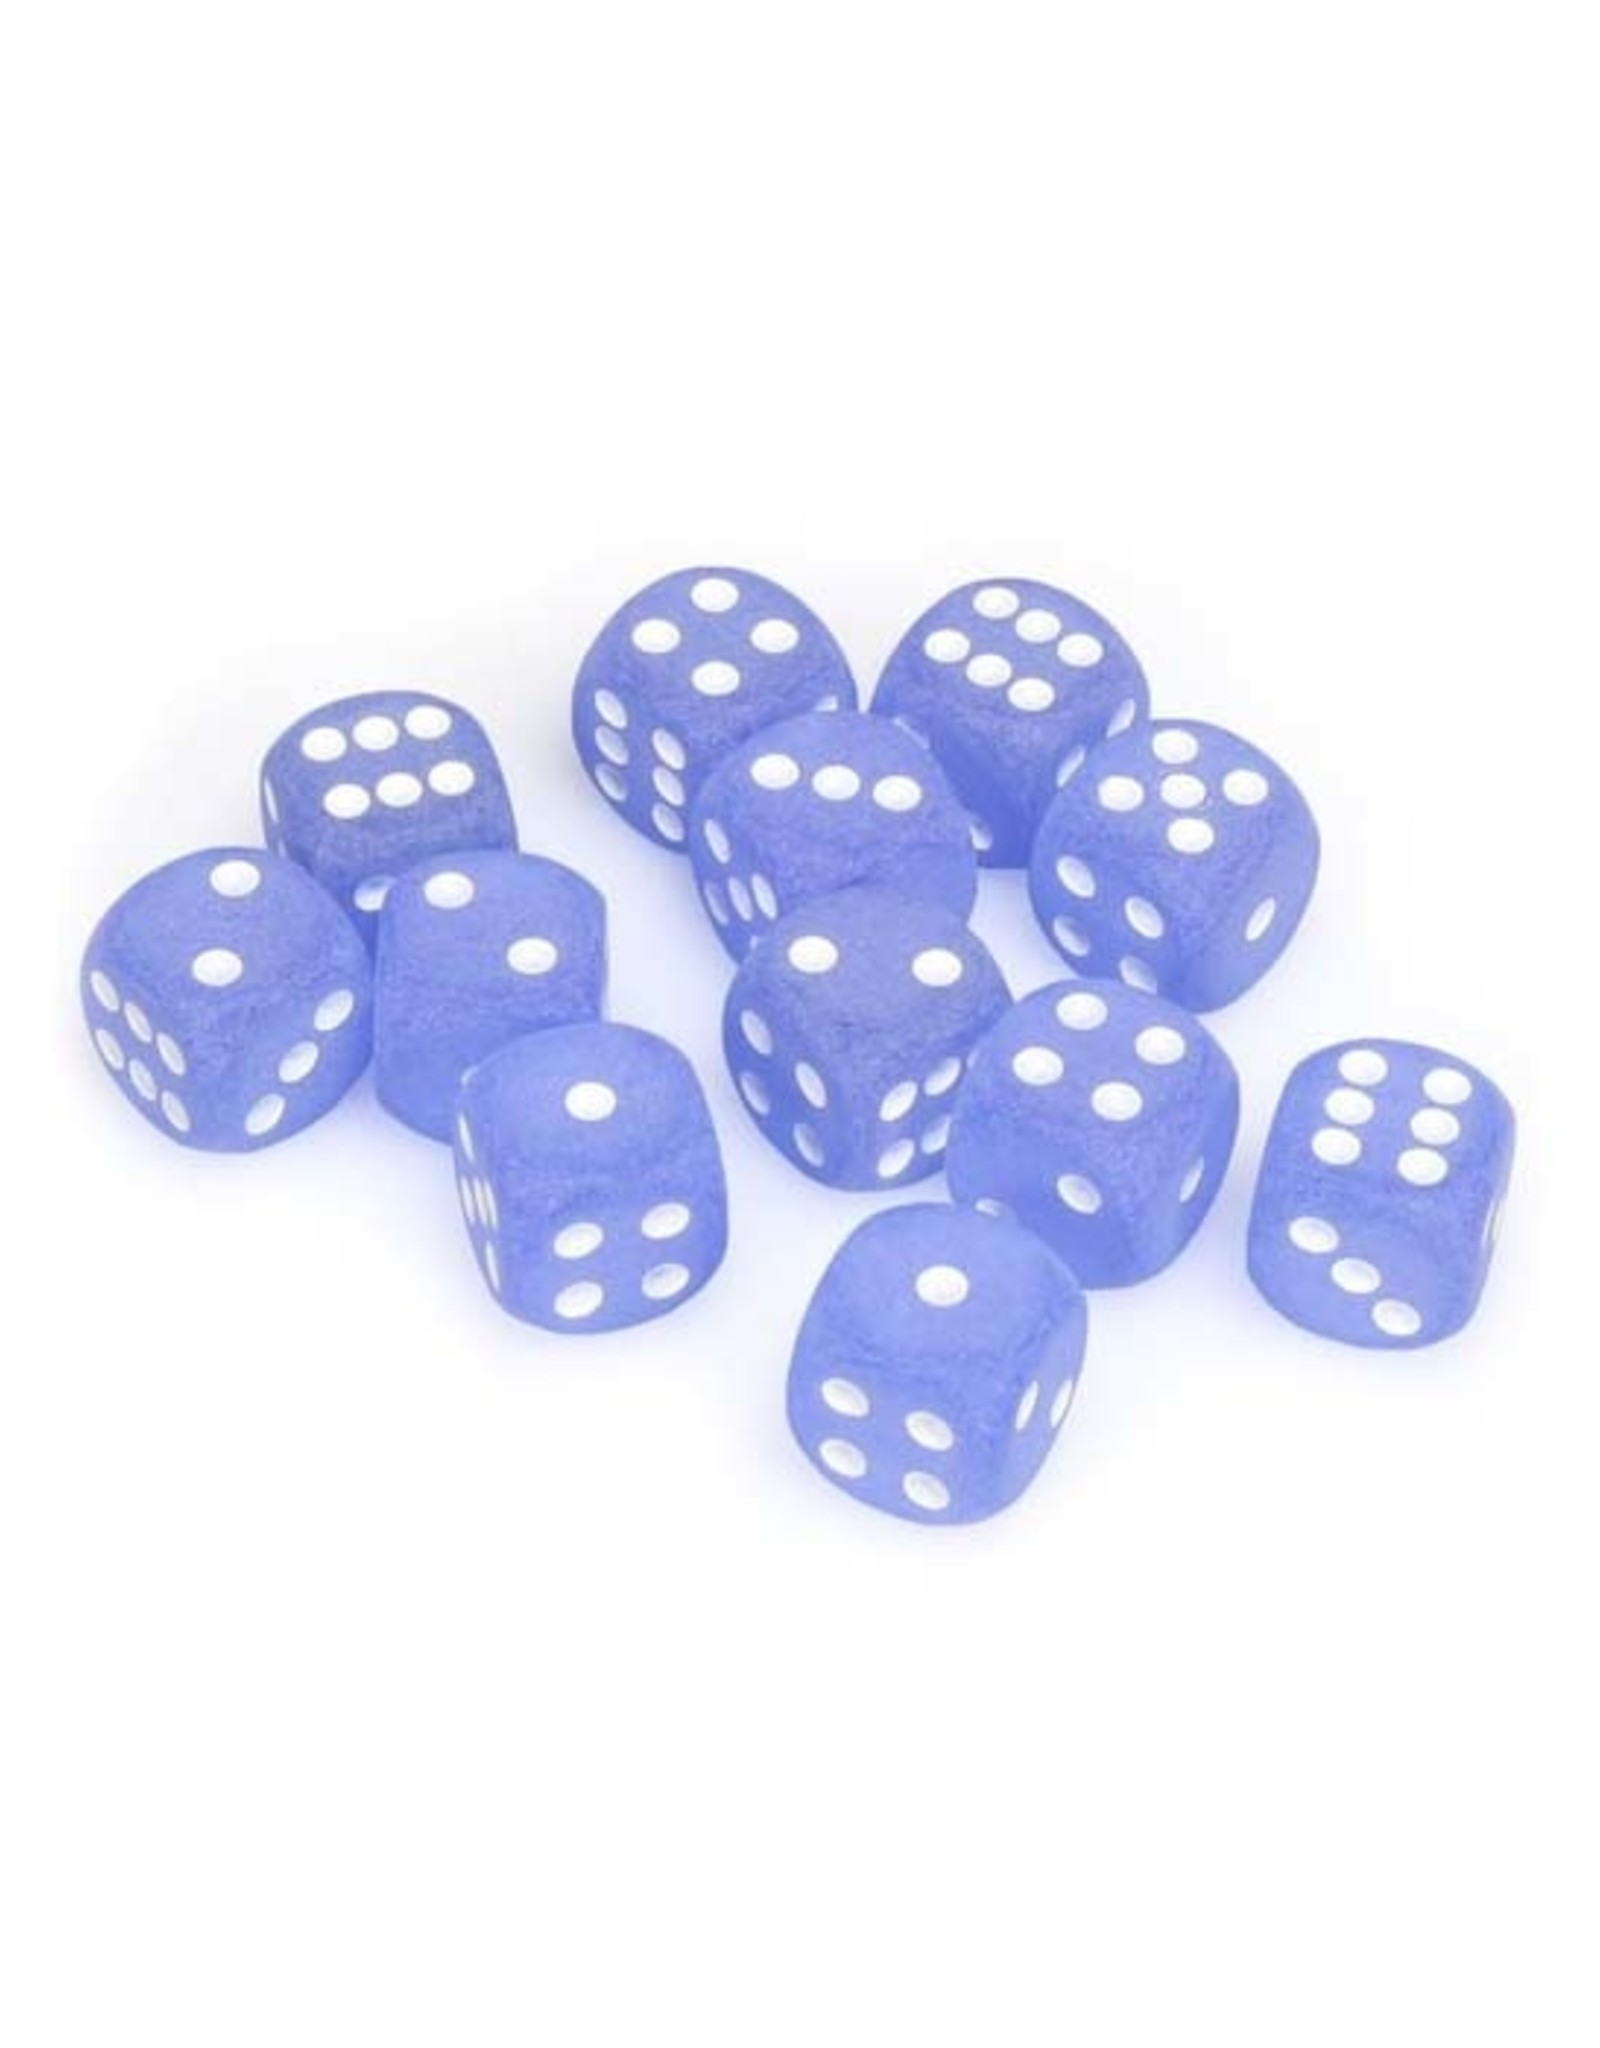 Chessex Chessex: 16mm D6 - Frosted - Blue w/ White